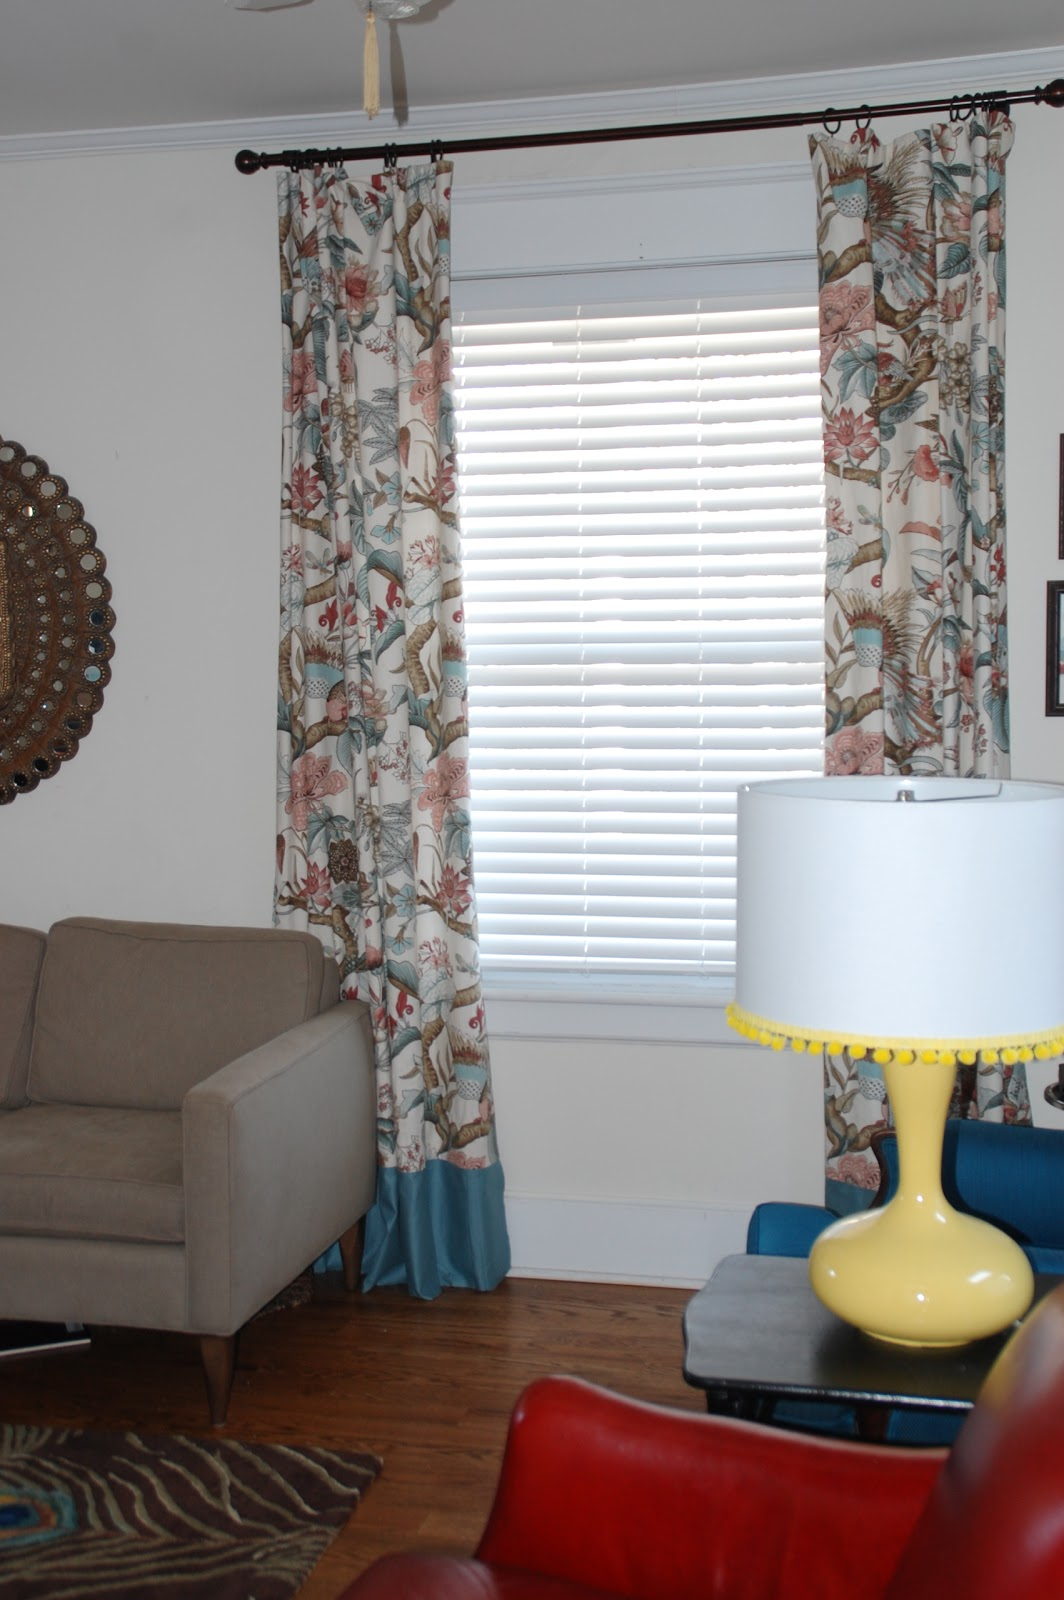 Living Room Curtain Ideas For Small Windows: Lisa Moves: Lengthening Curtains